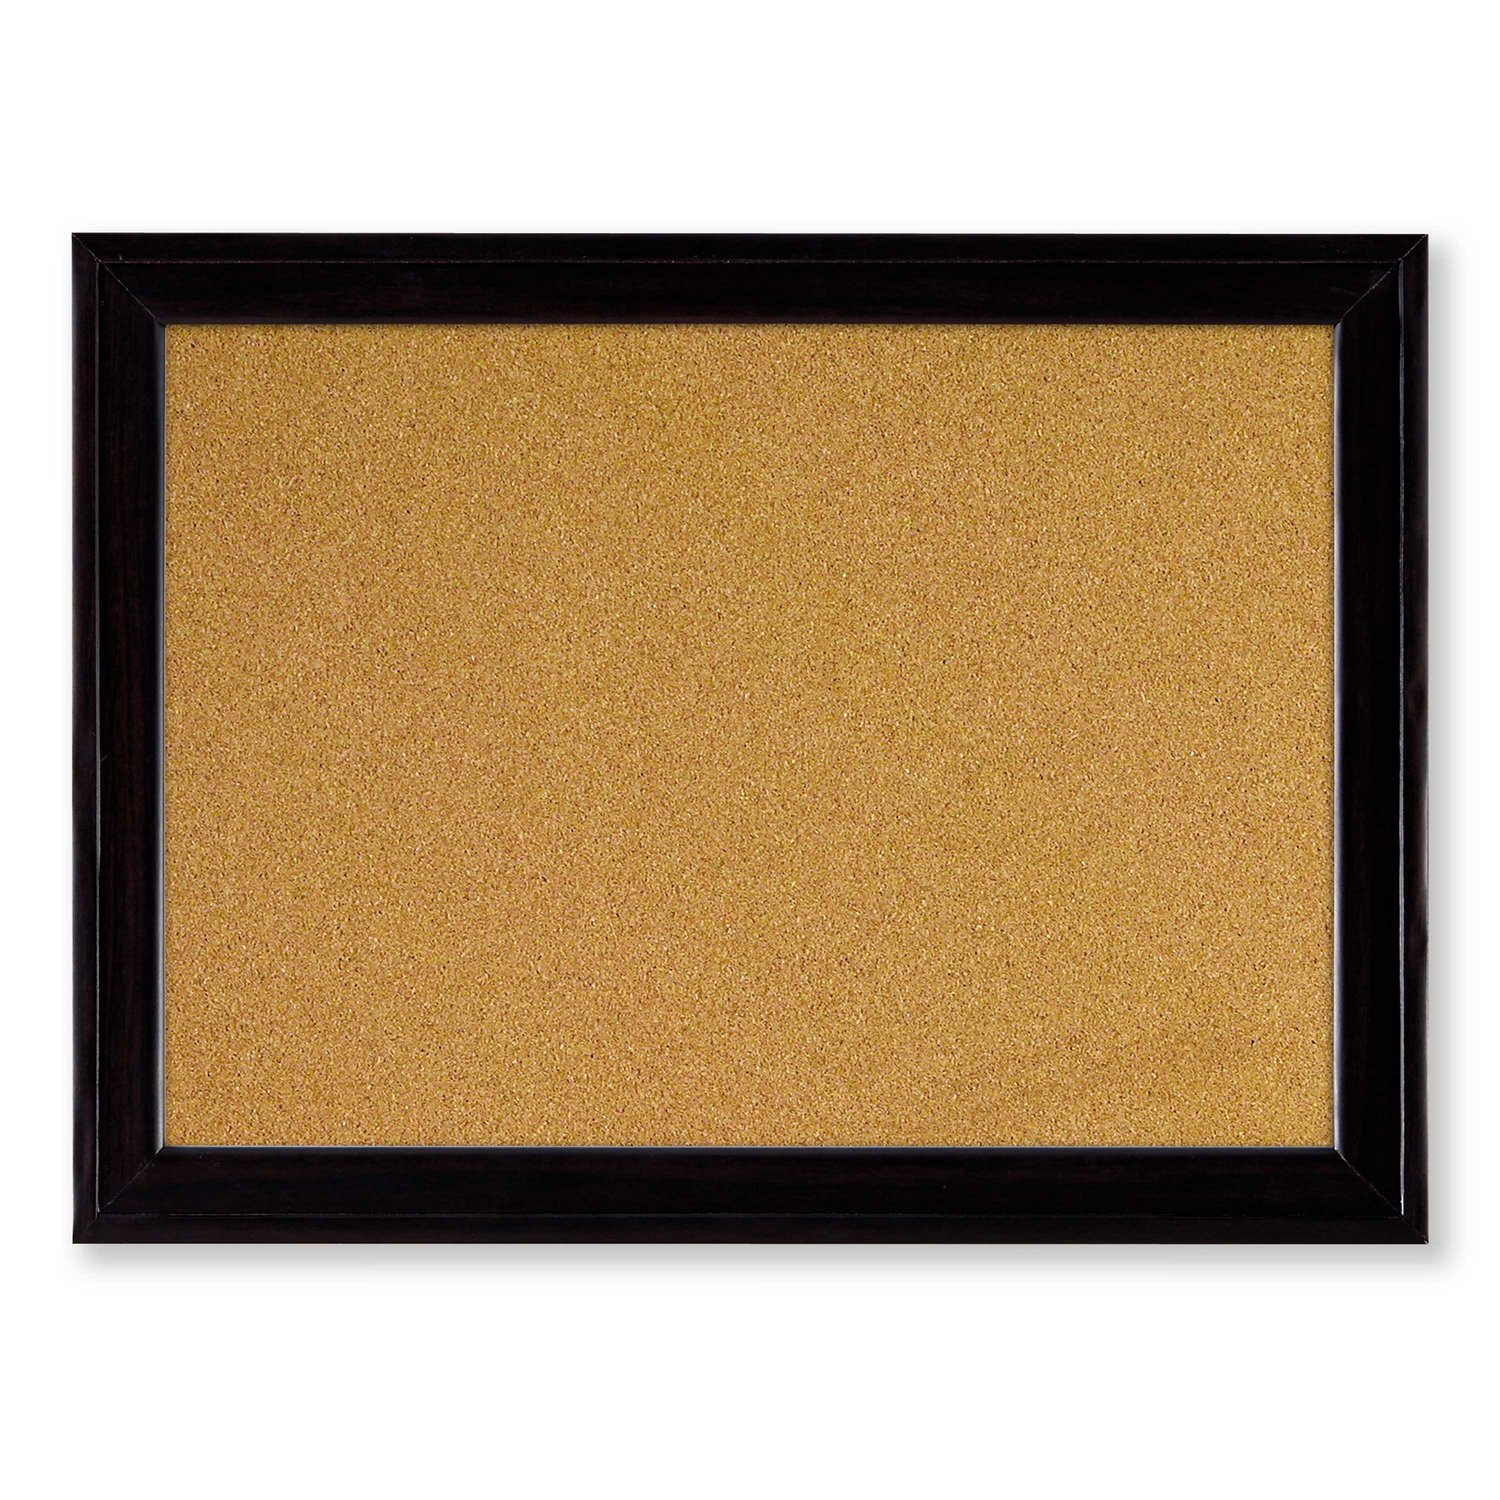 Nobo Quartet Cork Board with Sleek Black Wooden Frame, 585 x 430 mm:  Amazon.co.uk: Office Products